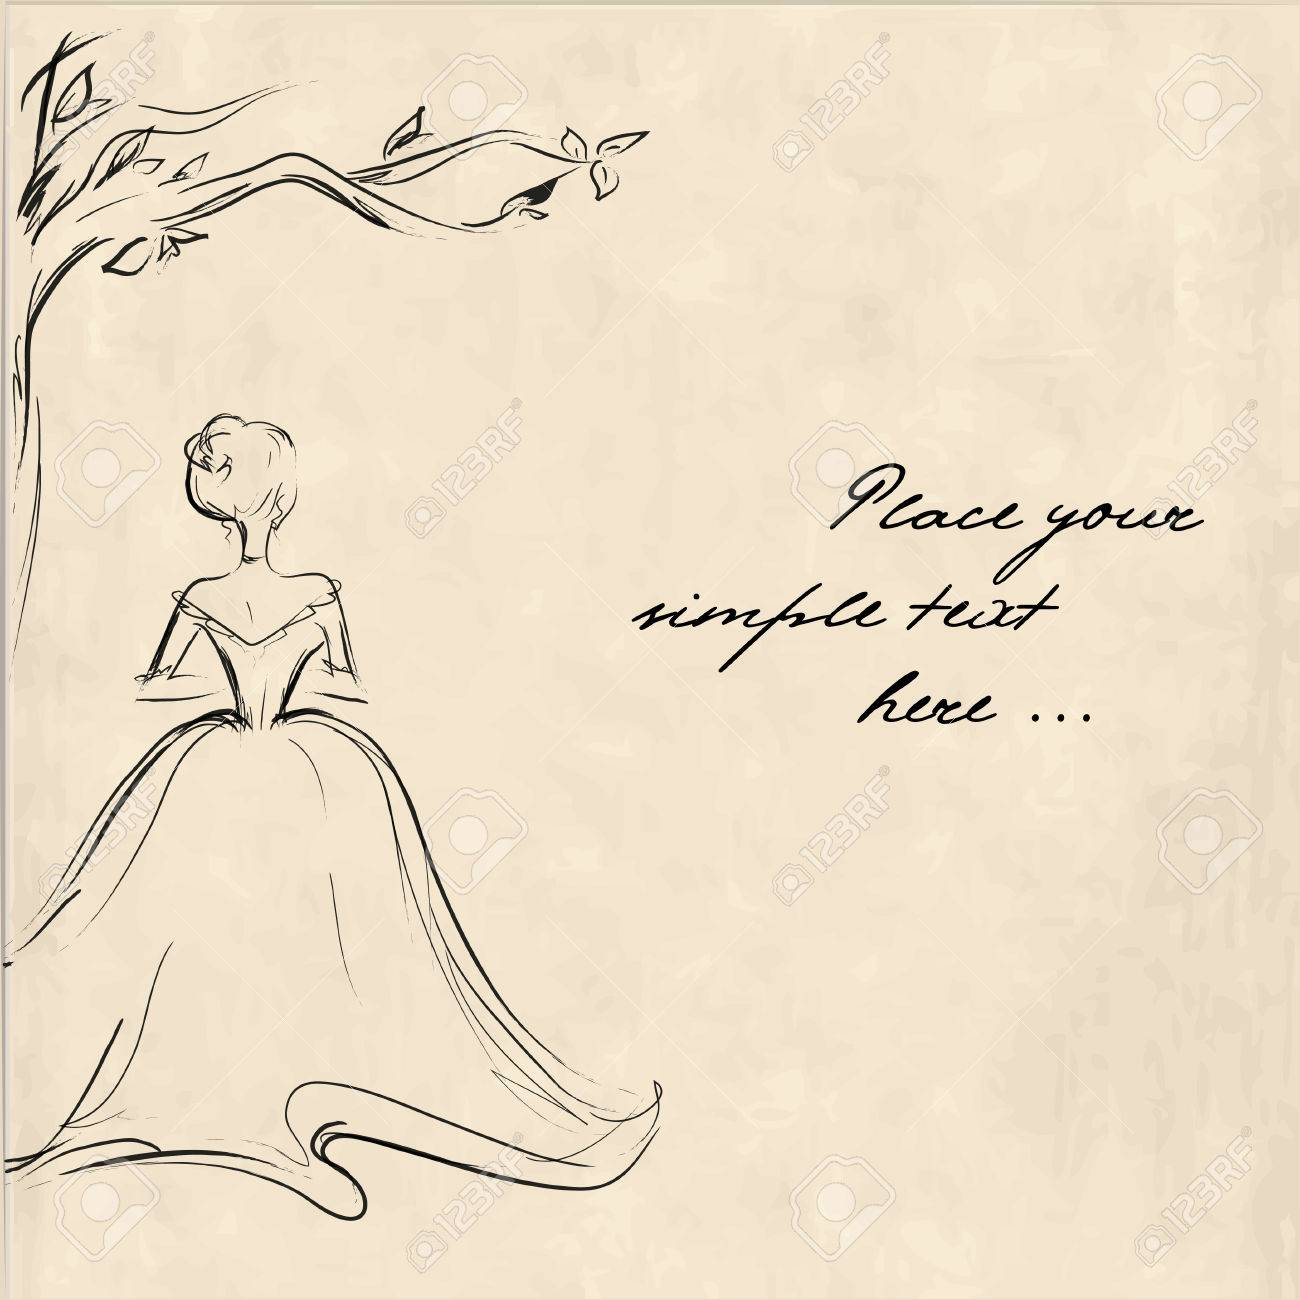 Sketch of a young woman from the back standing lonely under the tree retro illustration